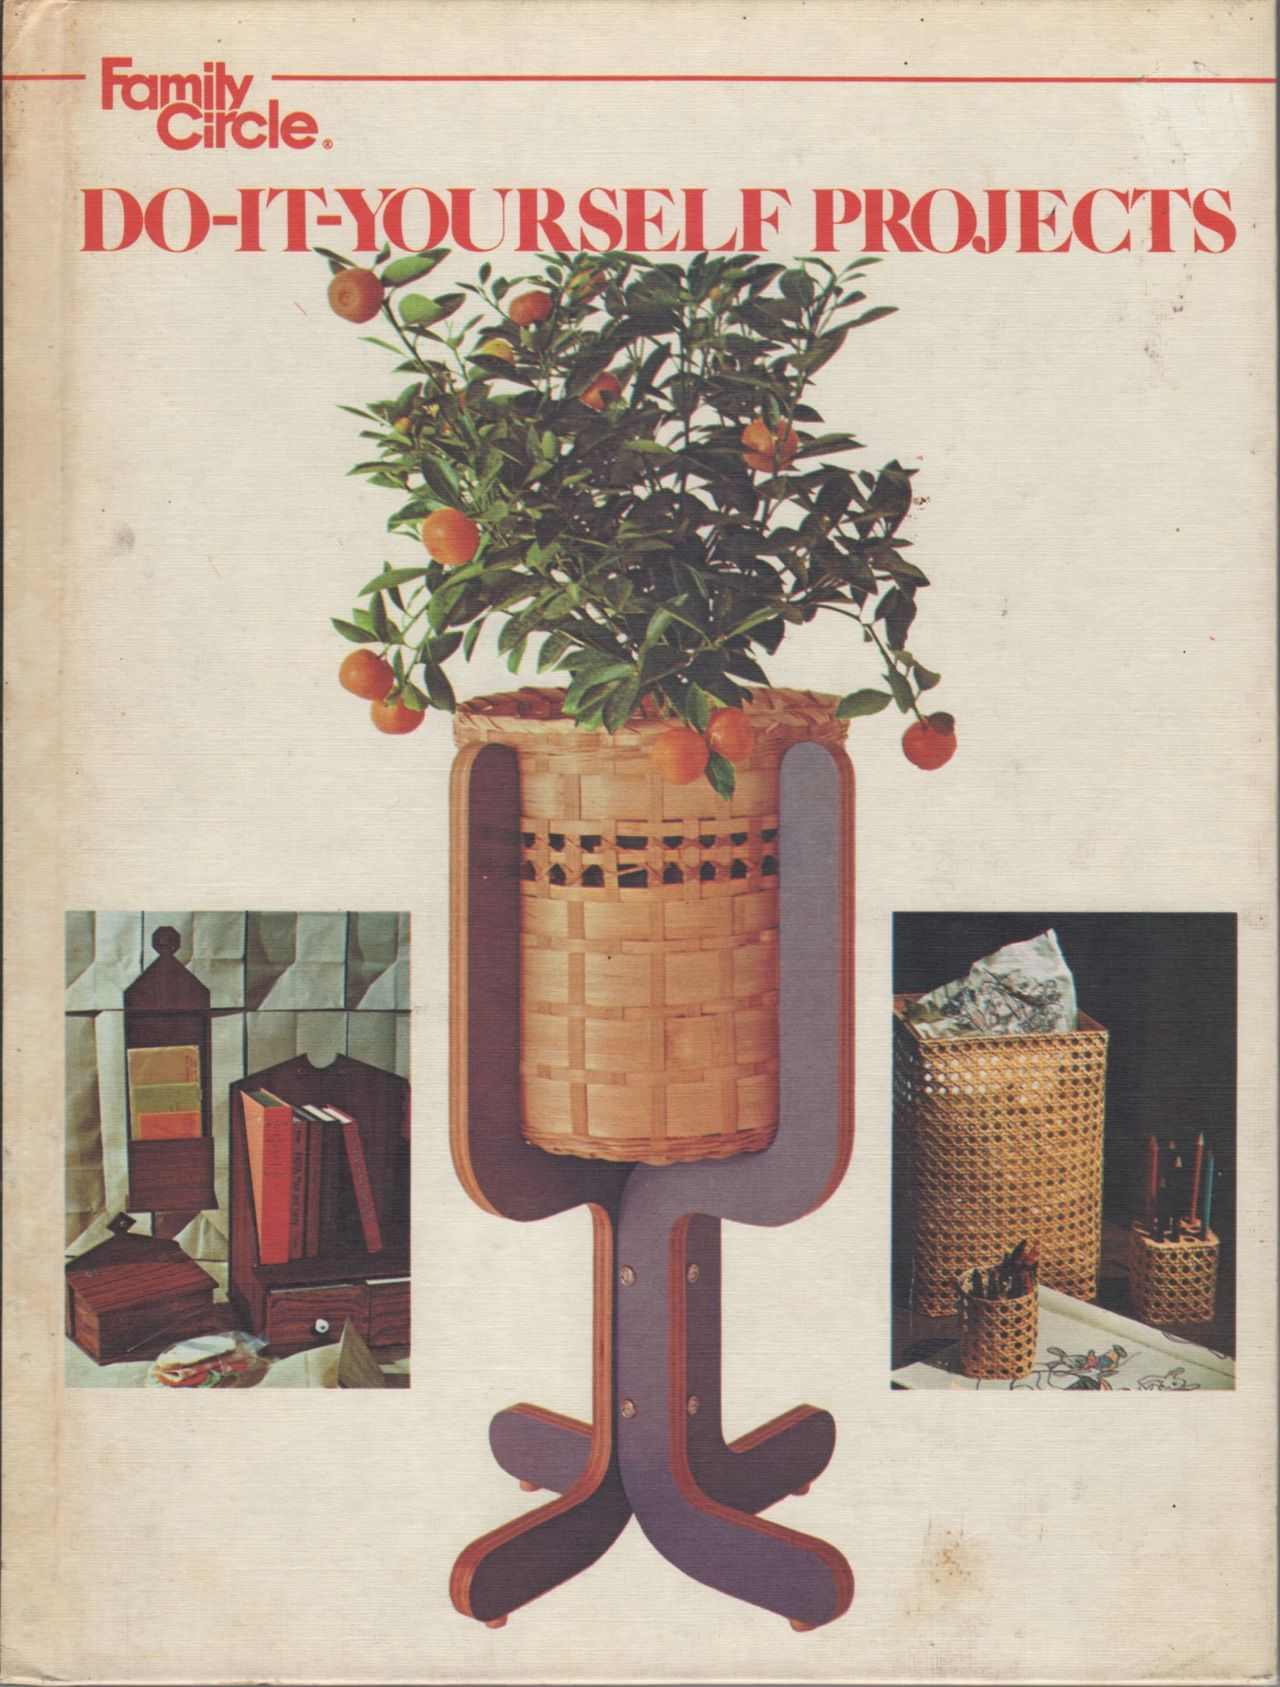 Do it yourself projects family circle arno press 1978 vintage find this pin and more on vintage diy furniture books solutioingenieria Images